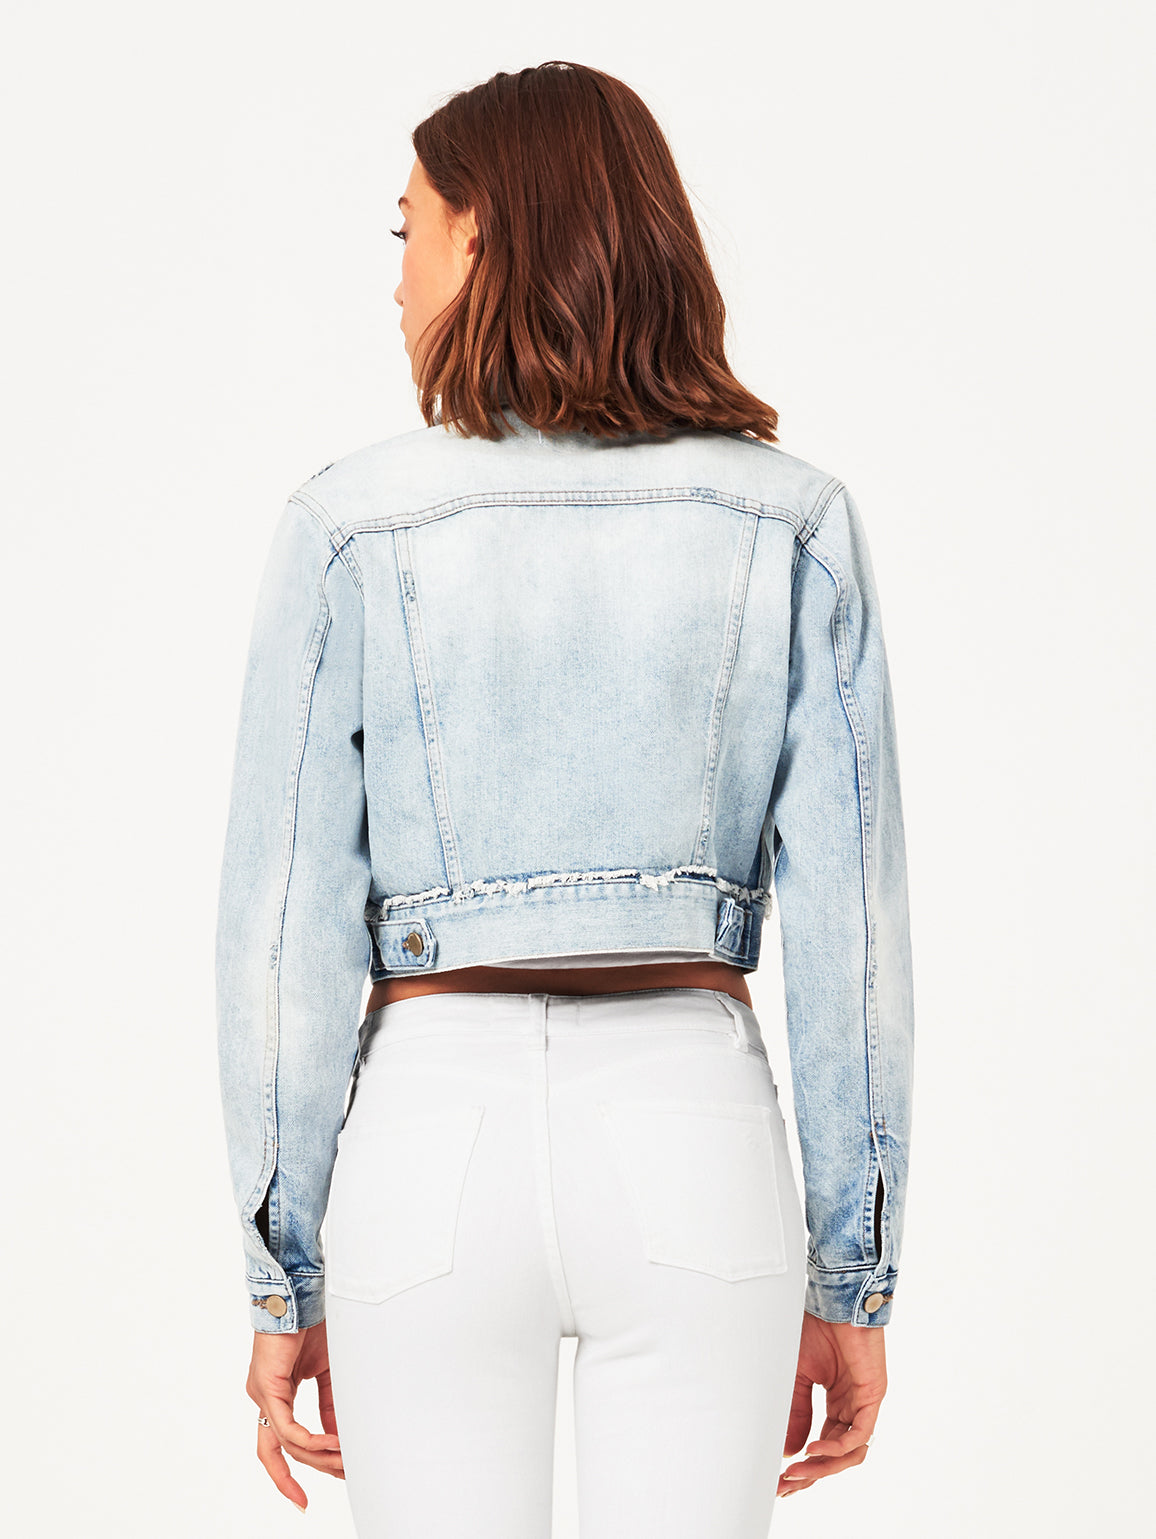 Shawn Cropped Boyfriend Jacket | Graceland DL 1961 Denim